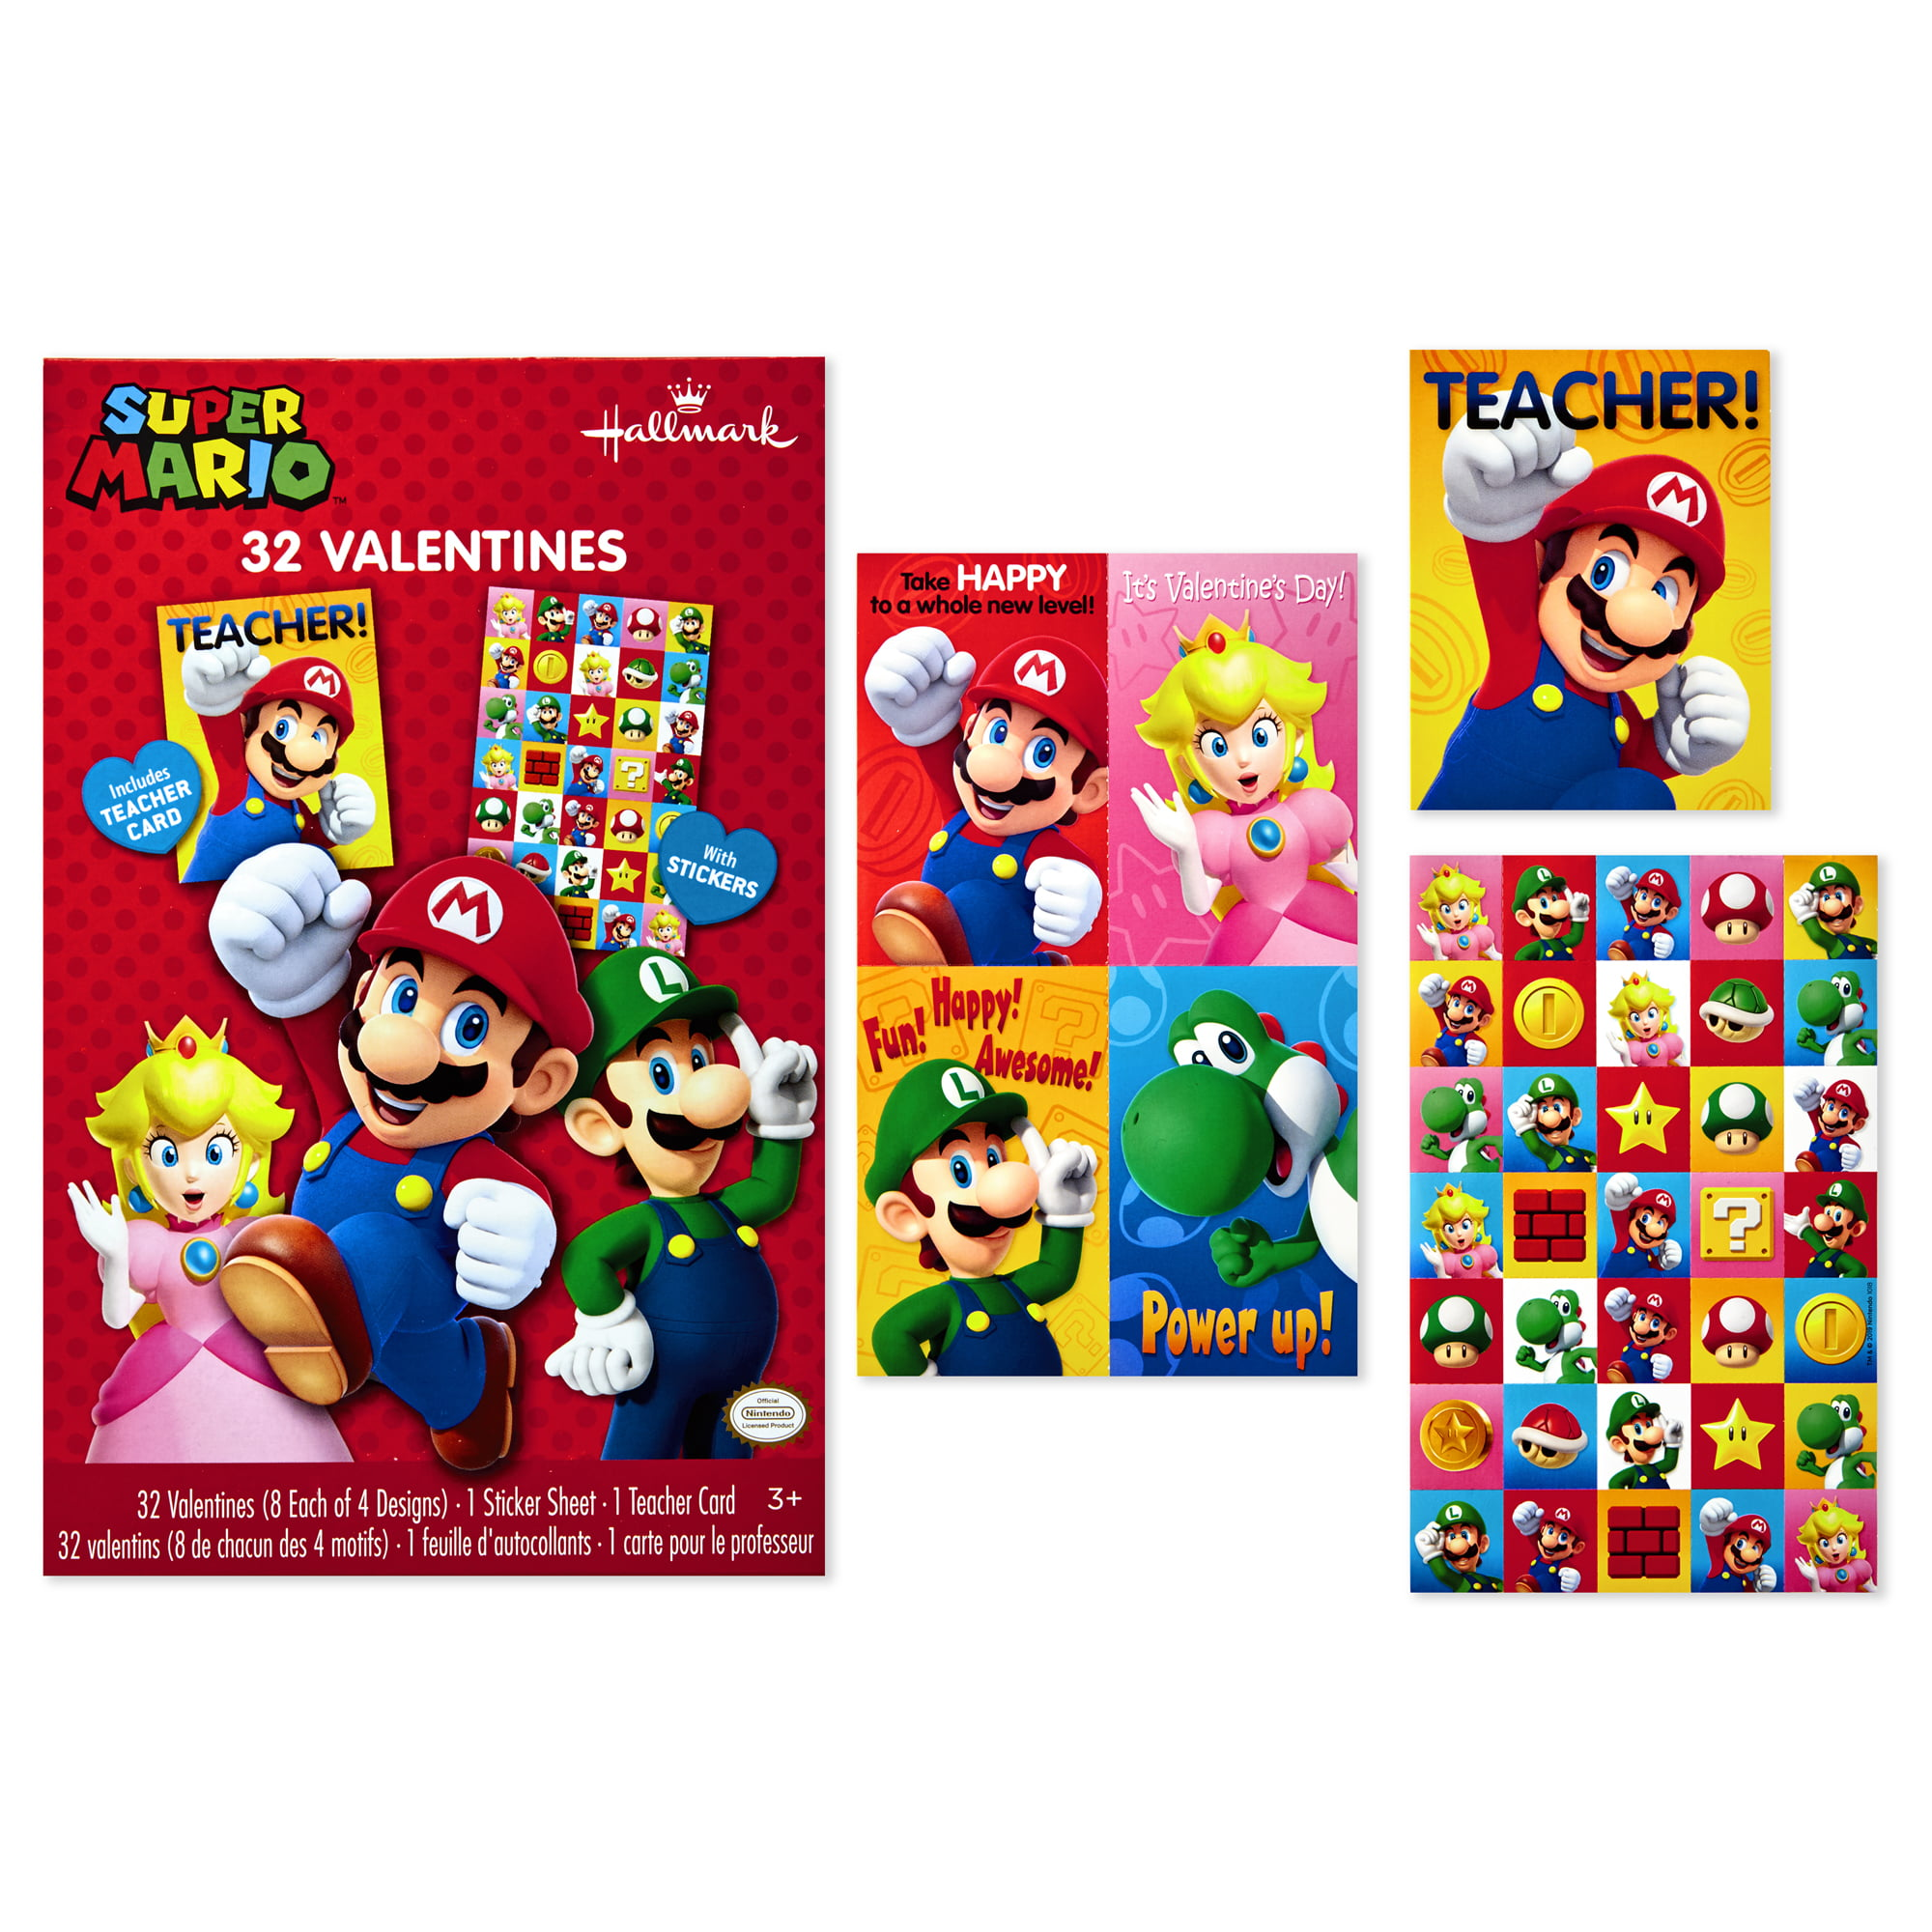 Hallmark kids nintendo super mario valentines day cards 32 cards 35 stickers 1 teacher card walmart com